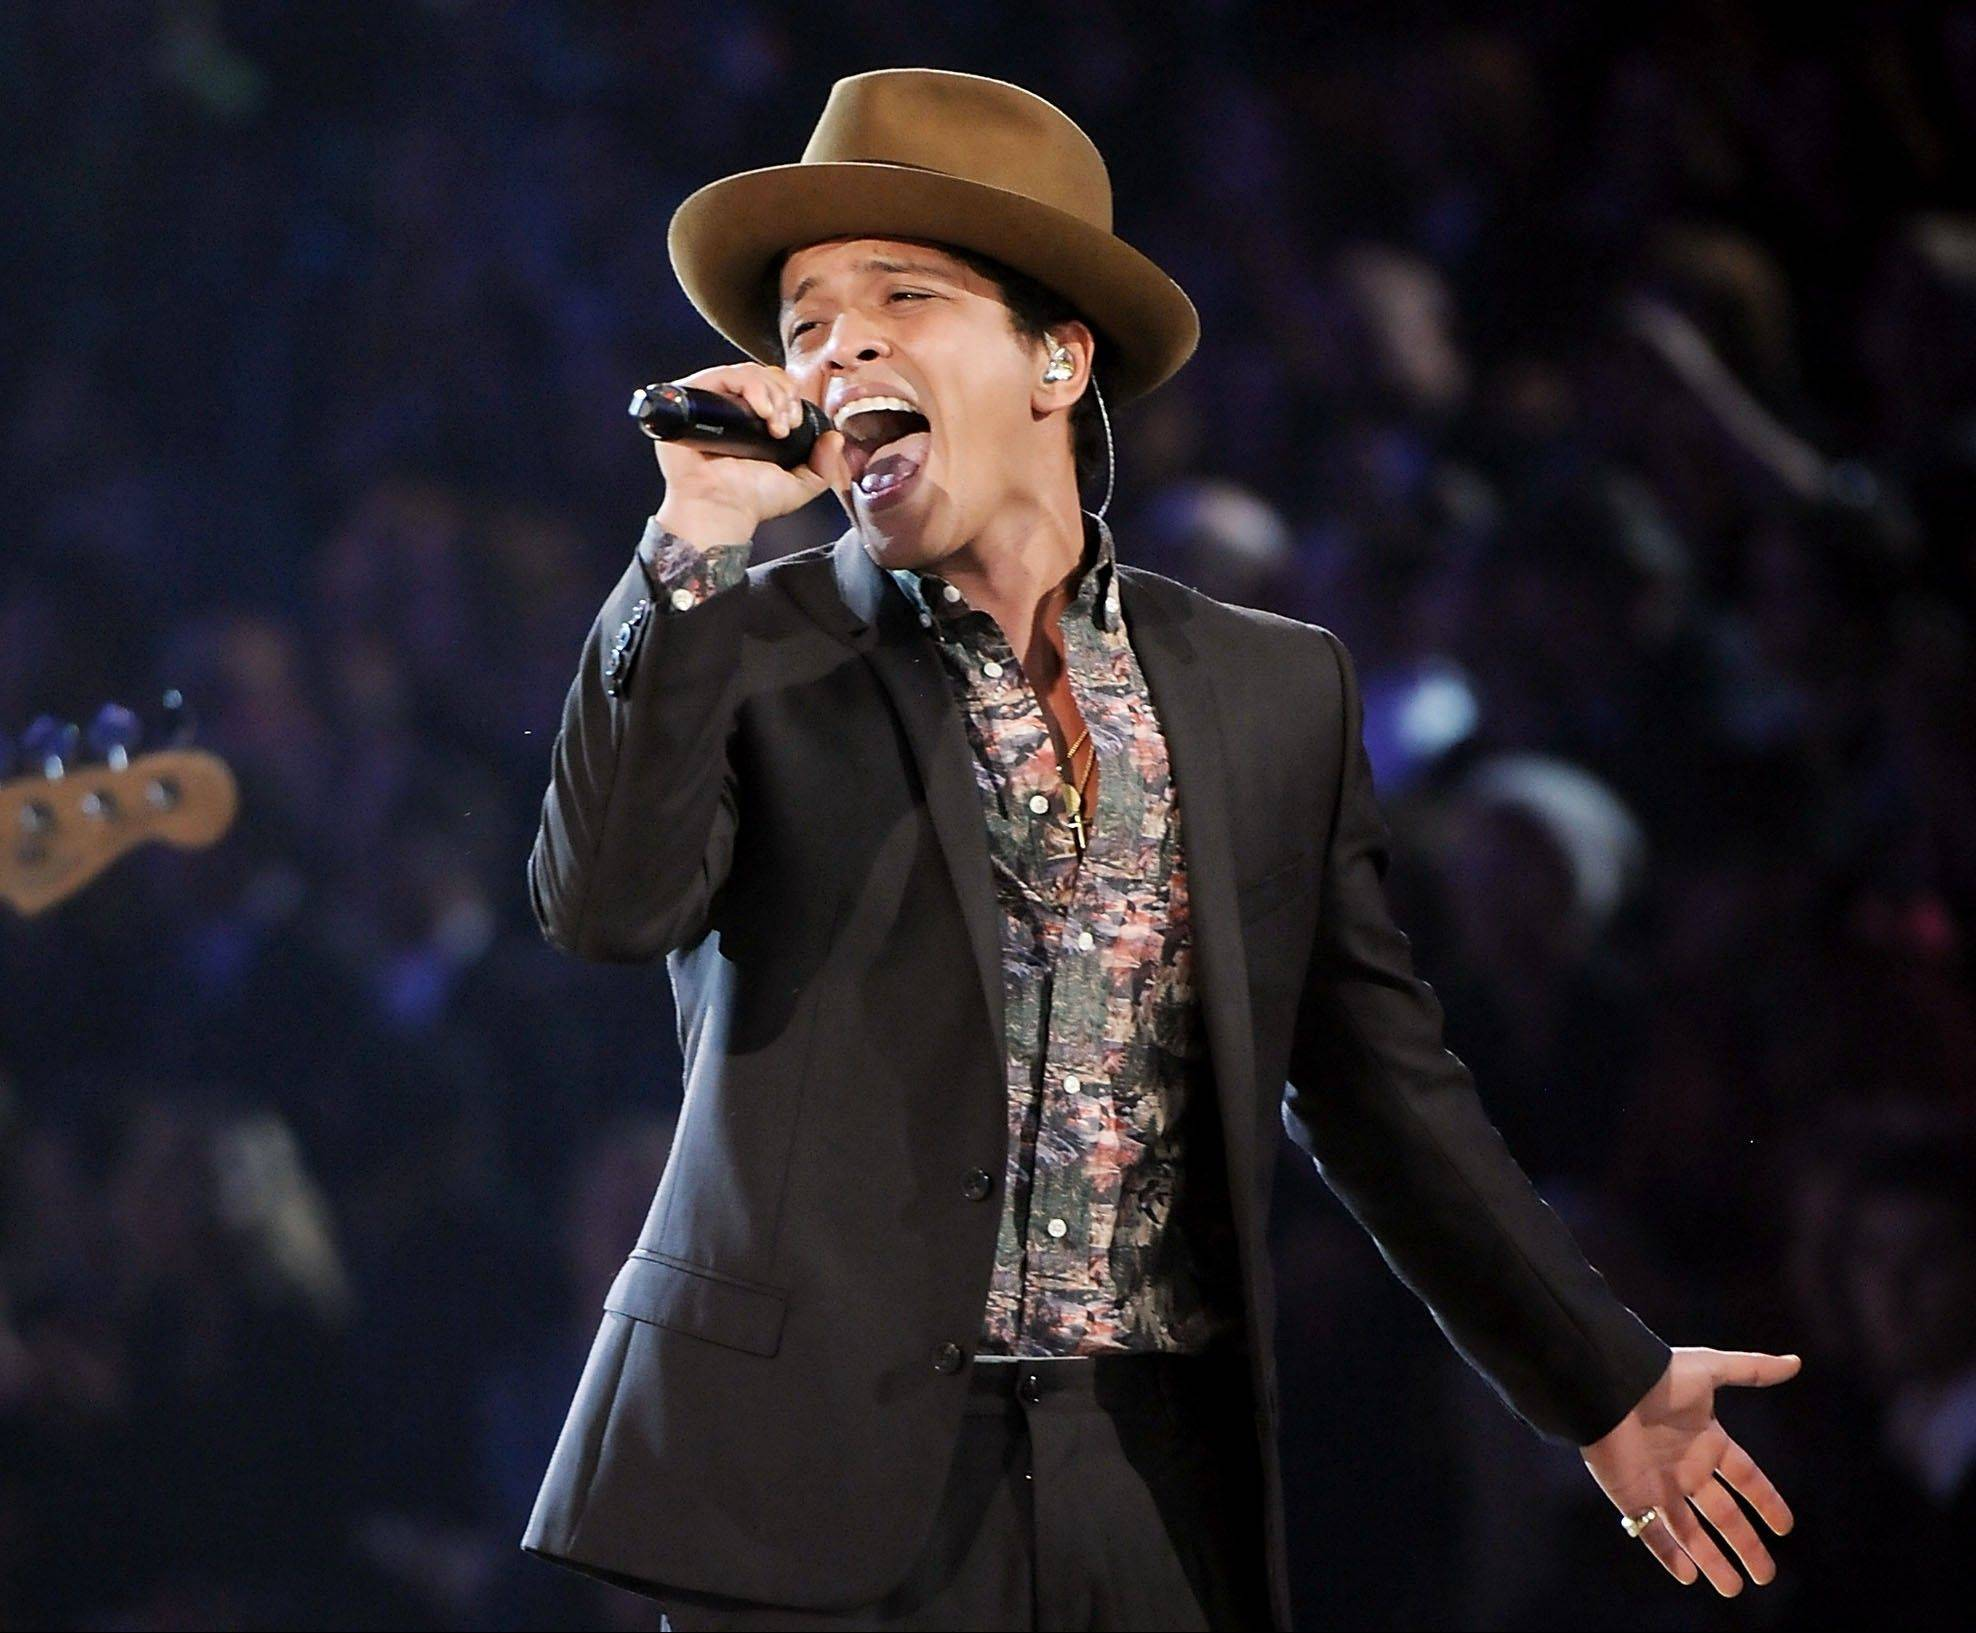 Singer Bruno Mars says he's all set for his Super Bowl halftime performance and he's trying not to worry too much about the cold. The Super Bowl will be played at MetLife Stadium in New Jersey on Feb 2.